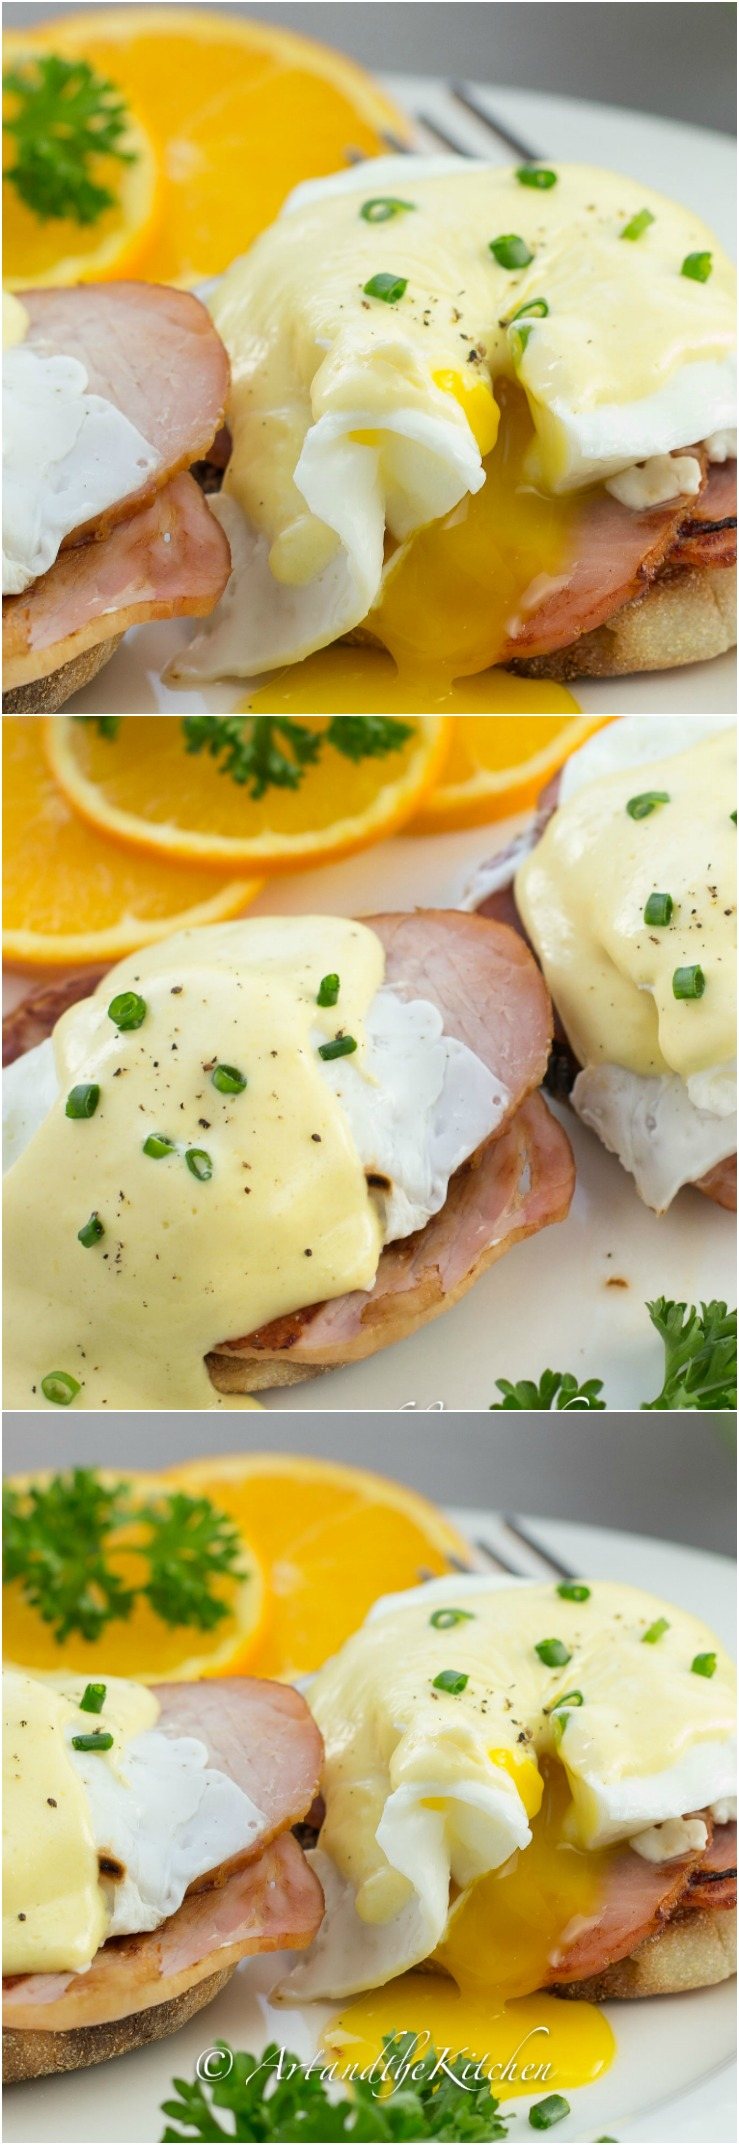 An easy recipe for making perfect Eggs Benedict. Using a blender helps make creamy smooth hollandaise sauce. via @artandthekitch